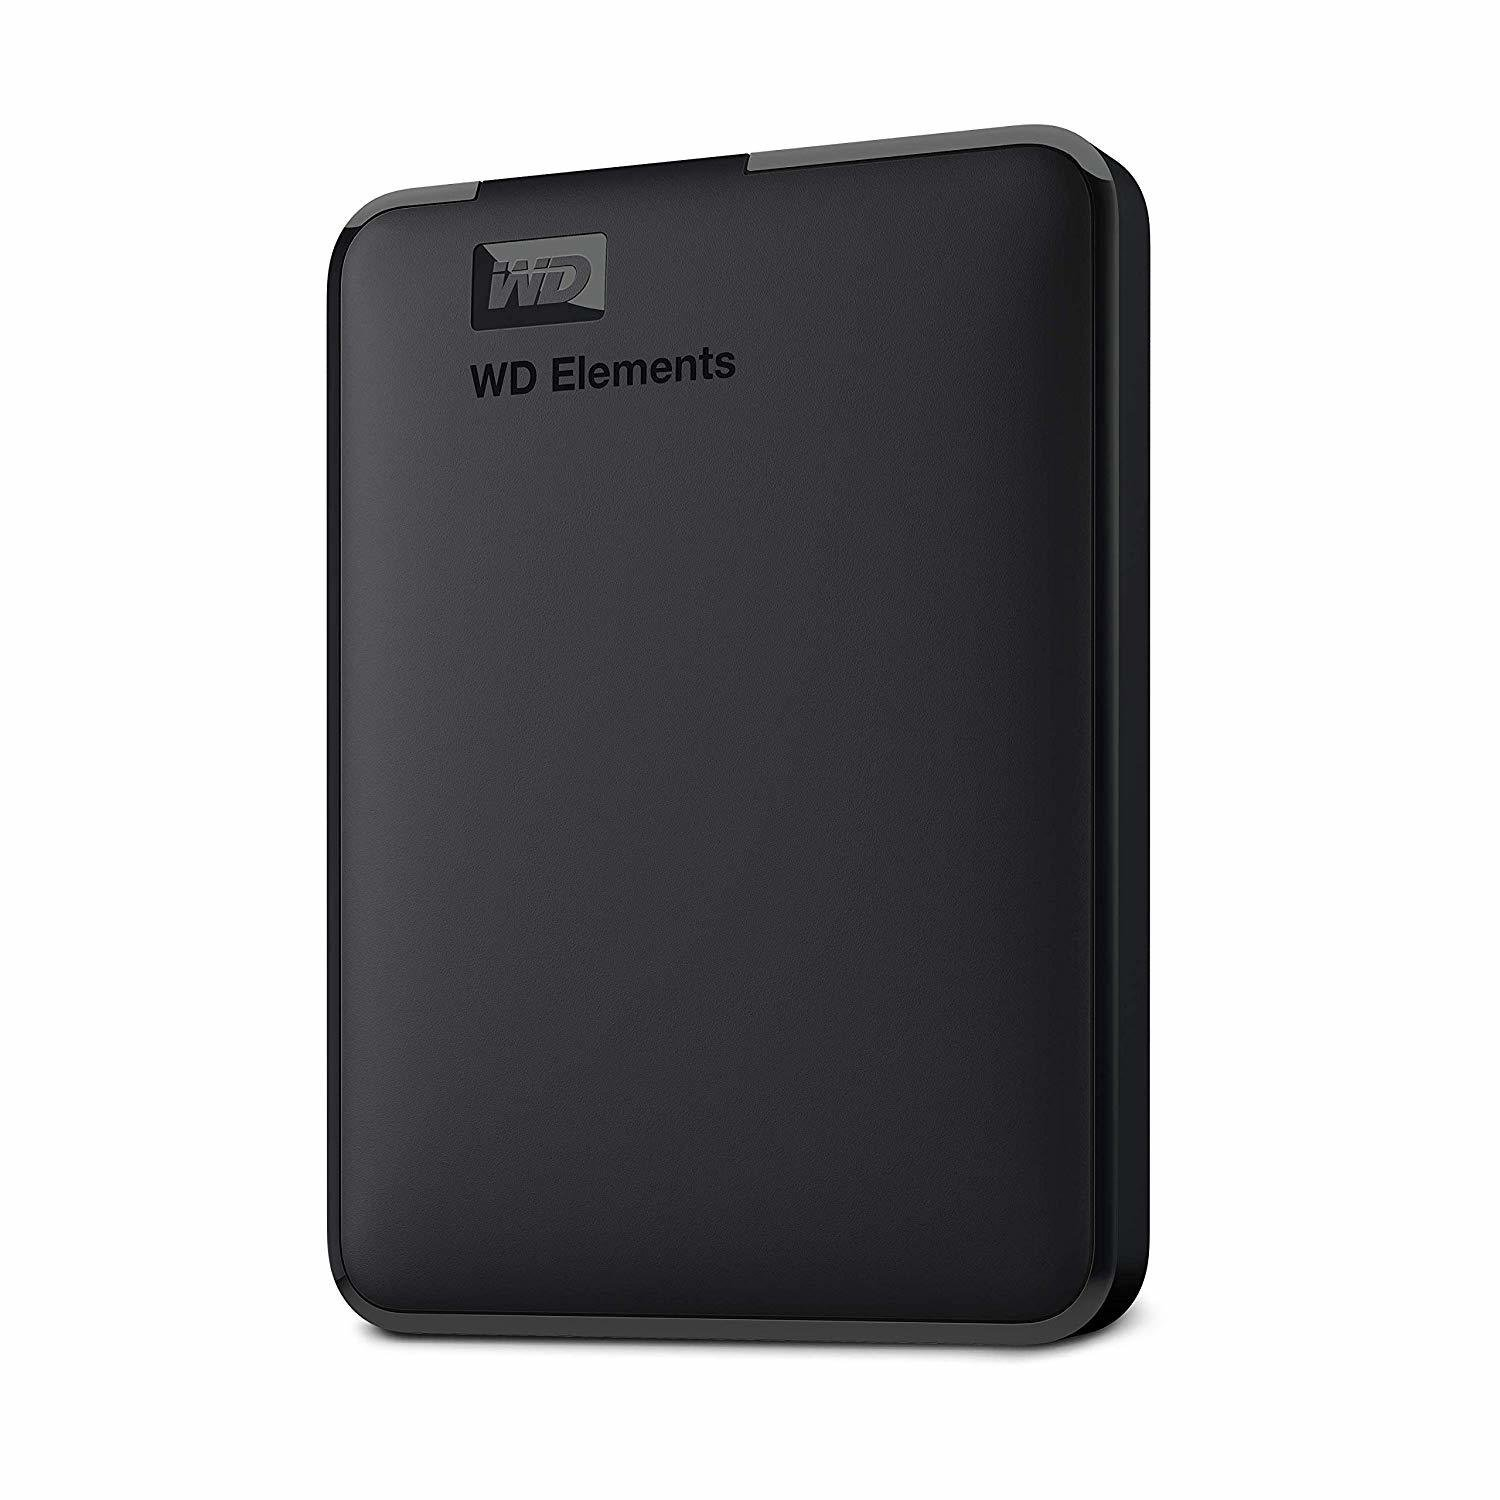 WD 2TB Elements Portable External Hard Drive, Black